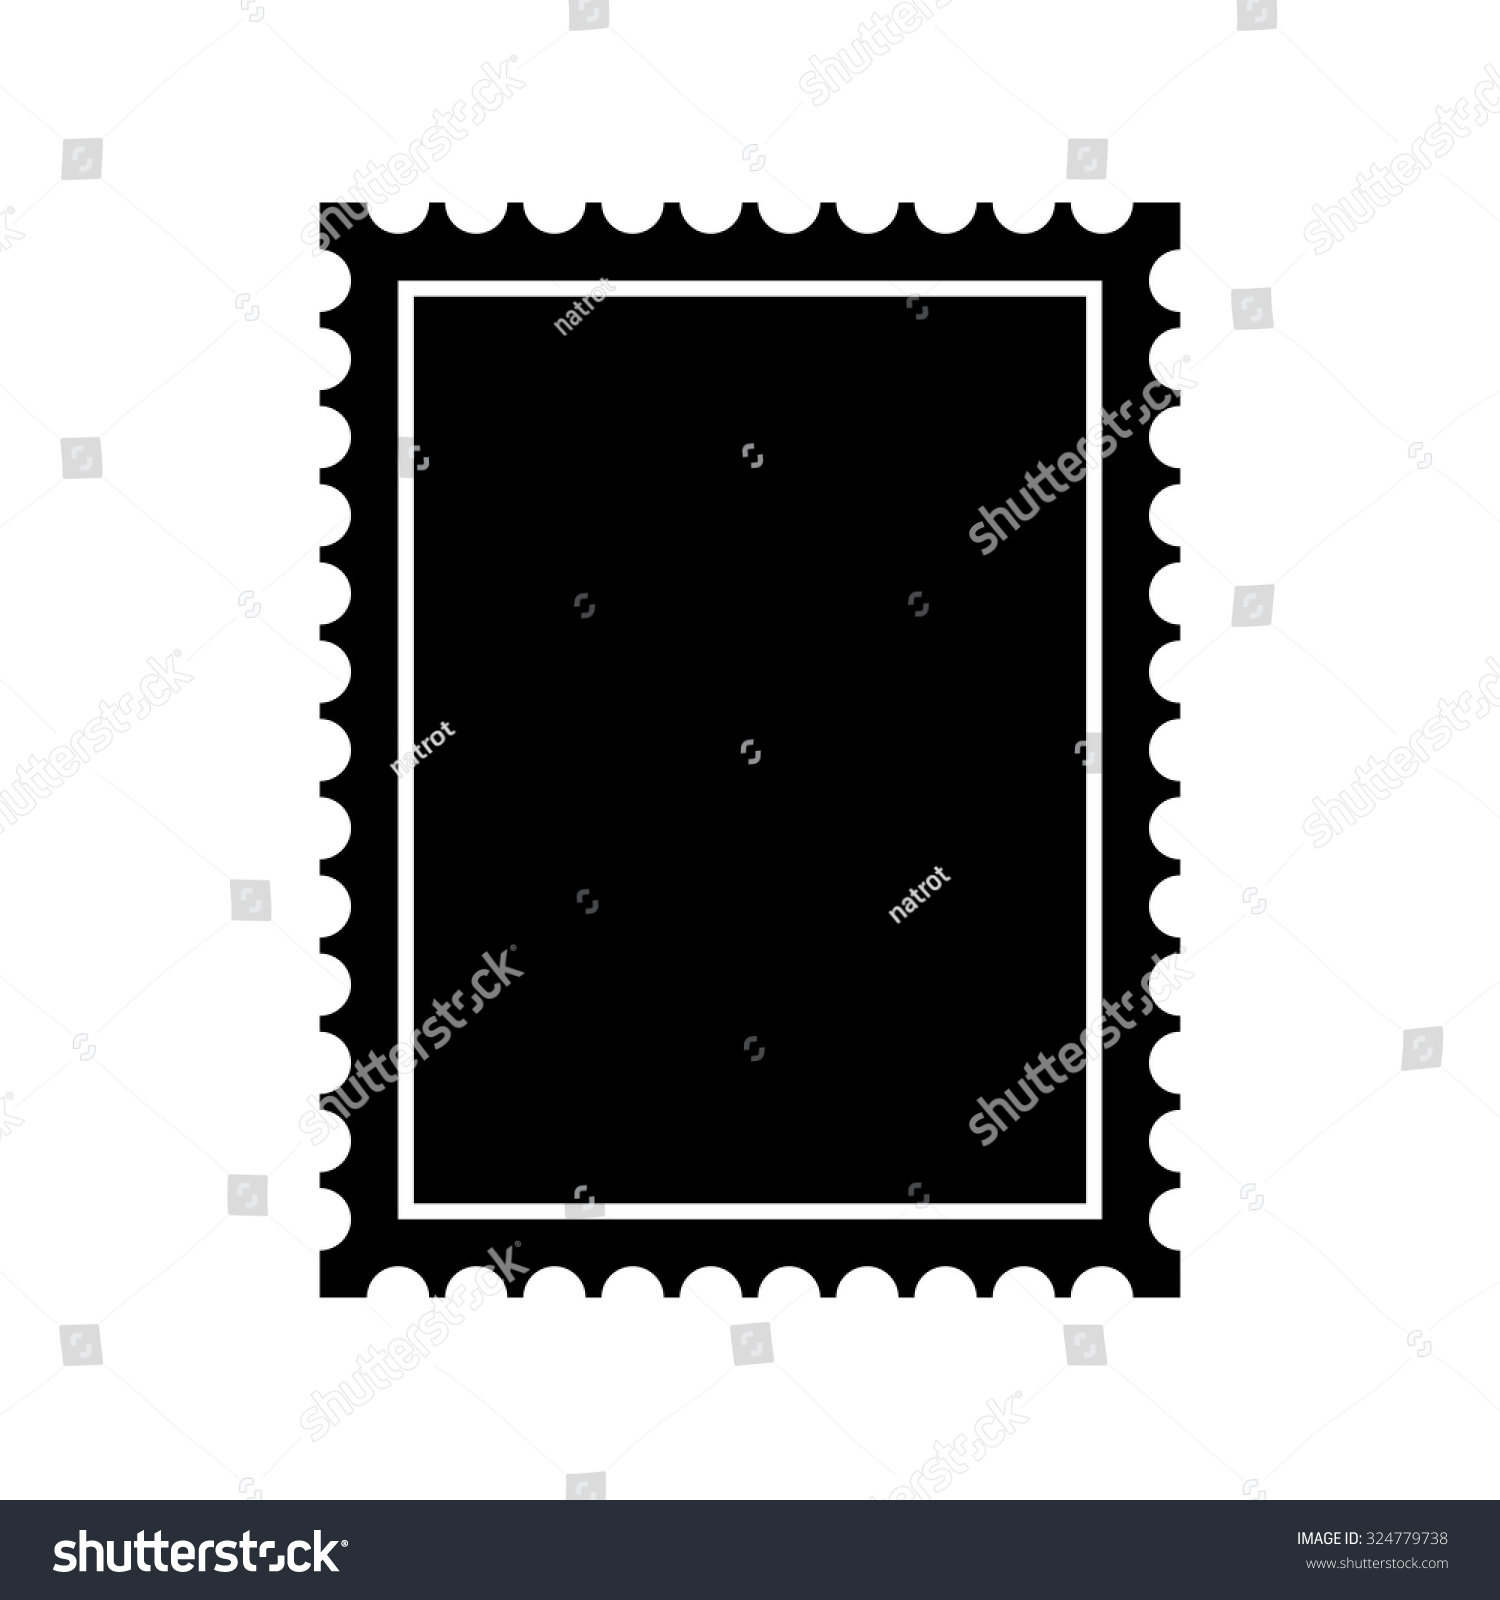 Postage Stamp Icon - Vector - 324779738 : Shutterstock